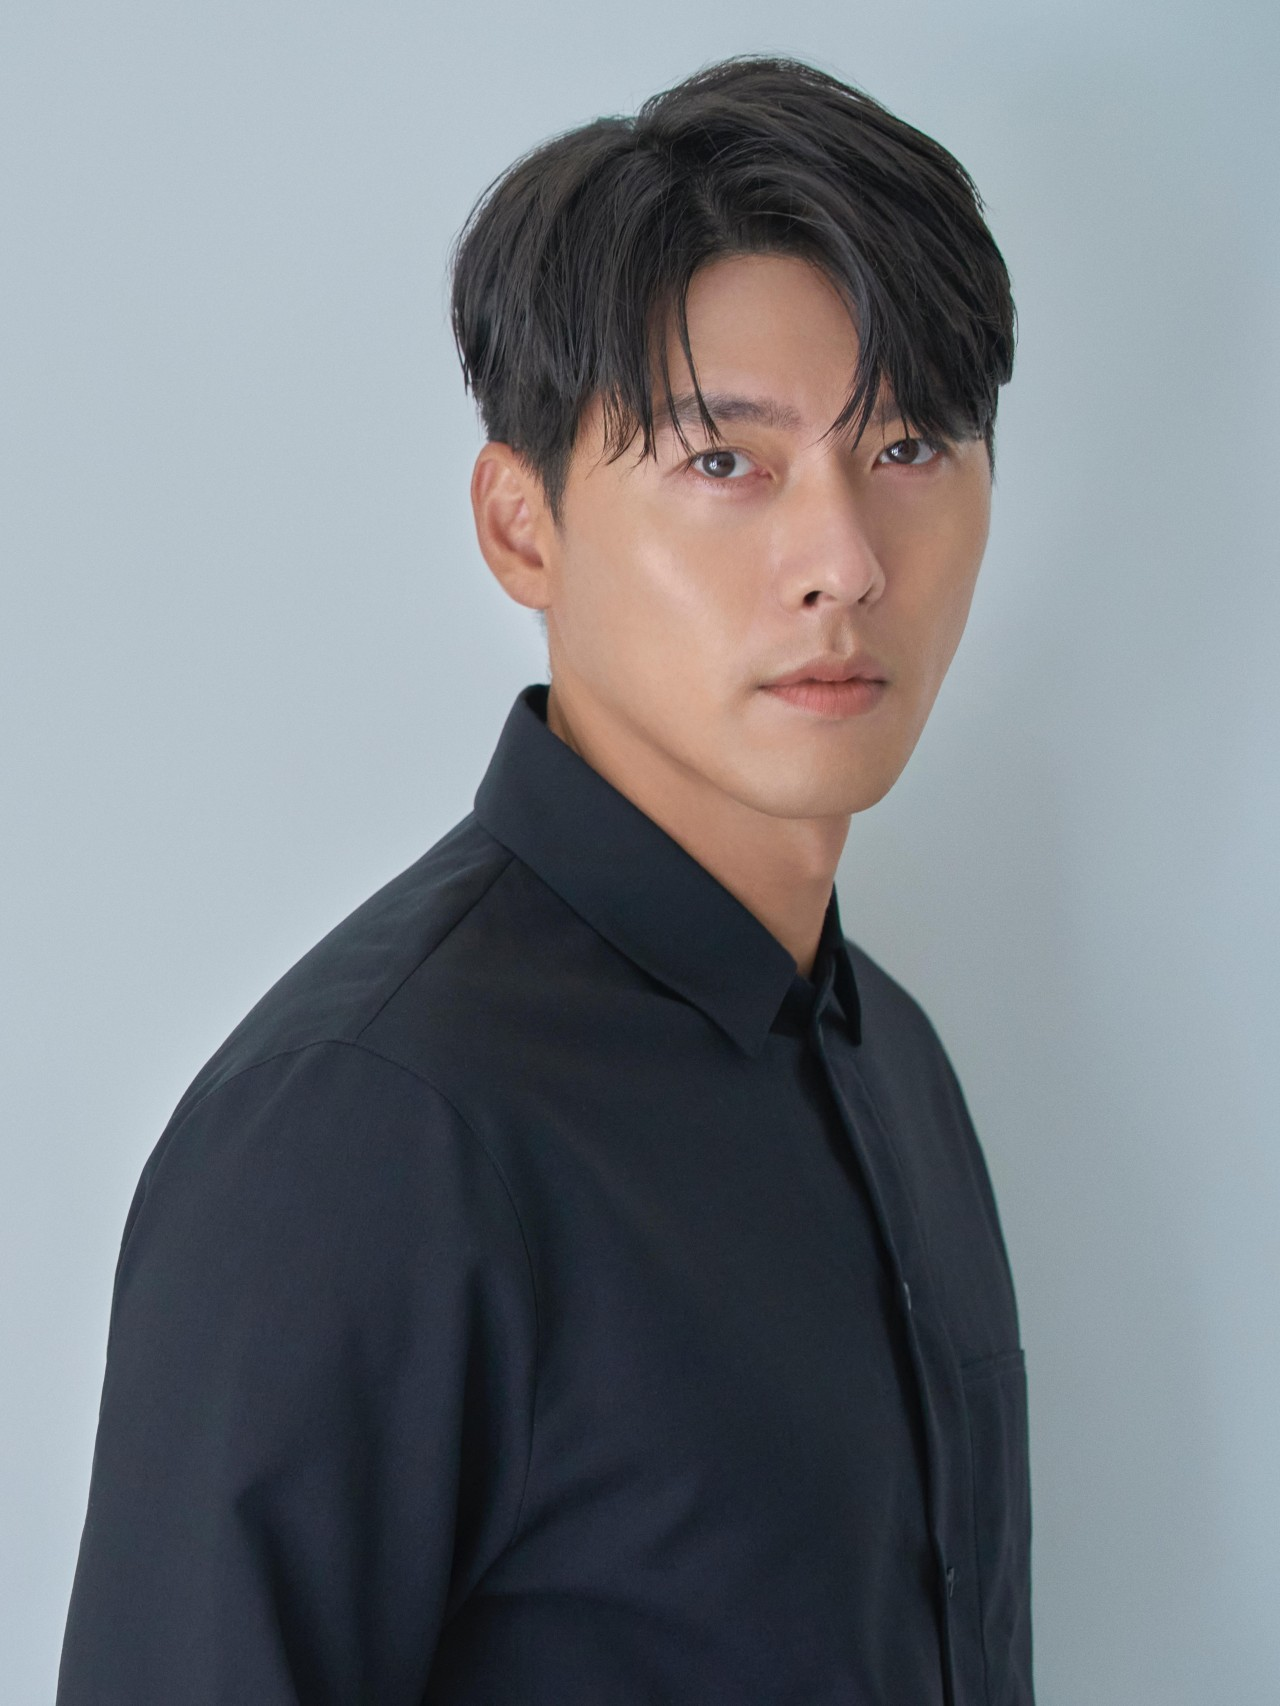 Hyun Bin will be playing North Korean agent character again in 'Confidential Assignment' sequel (VAST Entertainment)